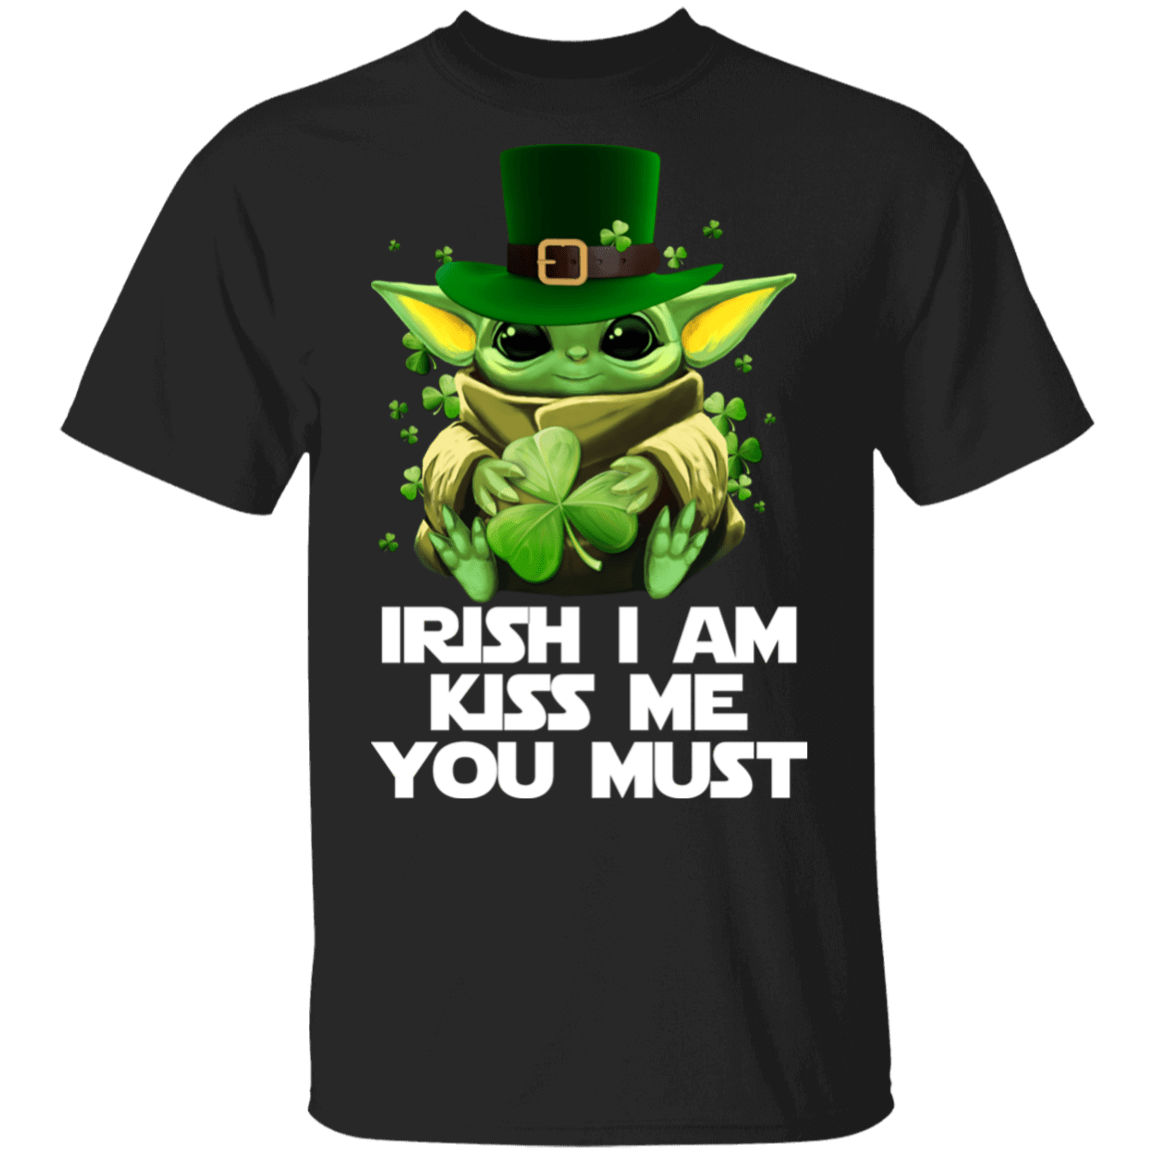 Irish I Am Kiss Me You Must Baby Yoda T-Shirts, Hoodies 1049-9953-84493600-48144 - Tee Ript